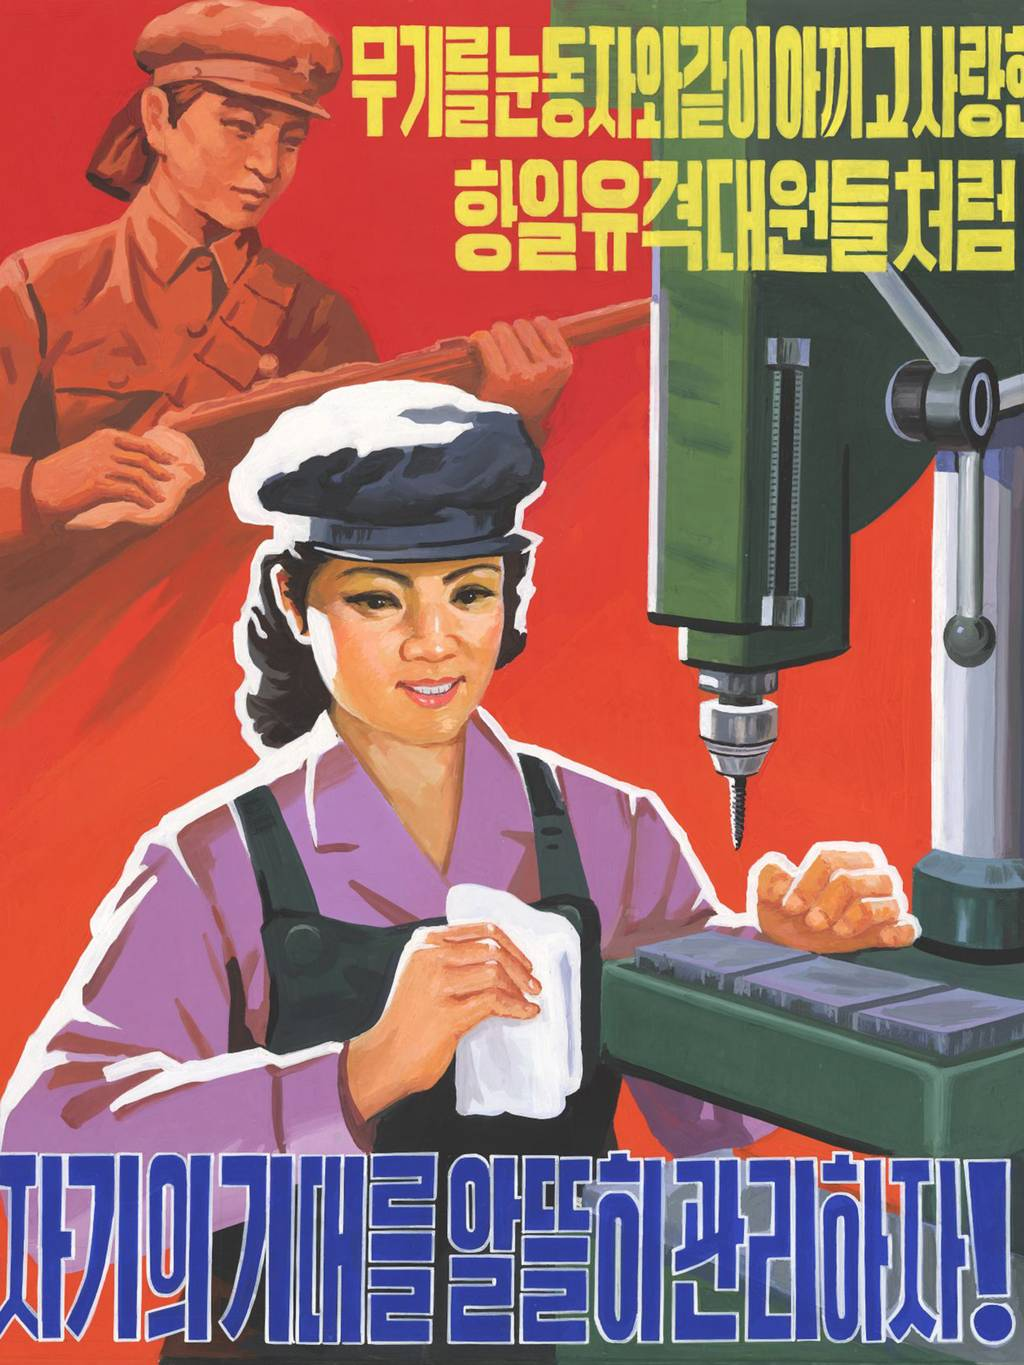 Rare North Korea Propoganda Posters Go On Display For First Time QQJr7BH9Fnk poster 5.jpg